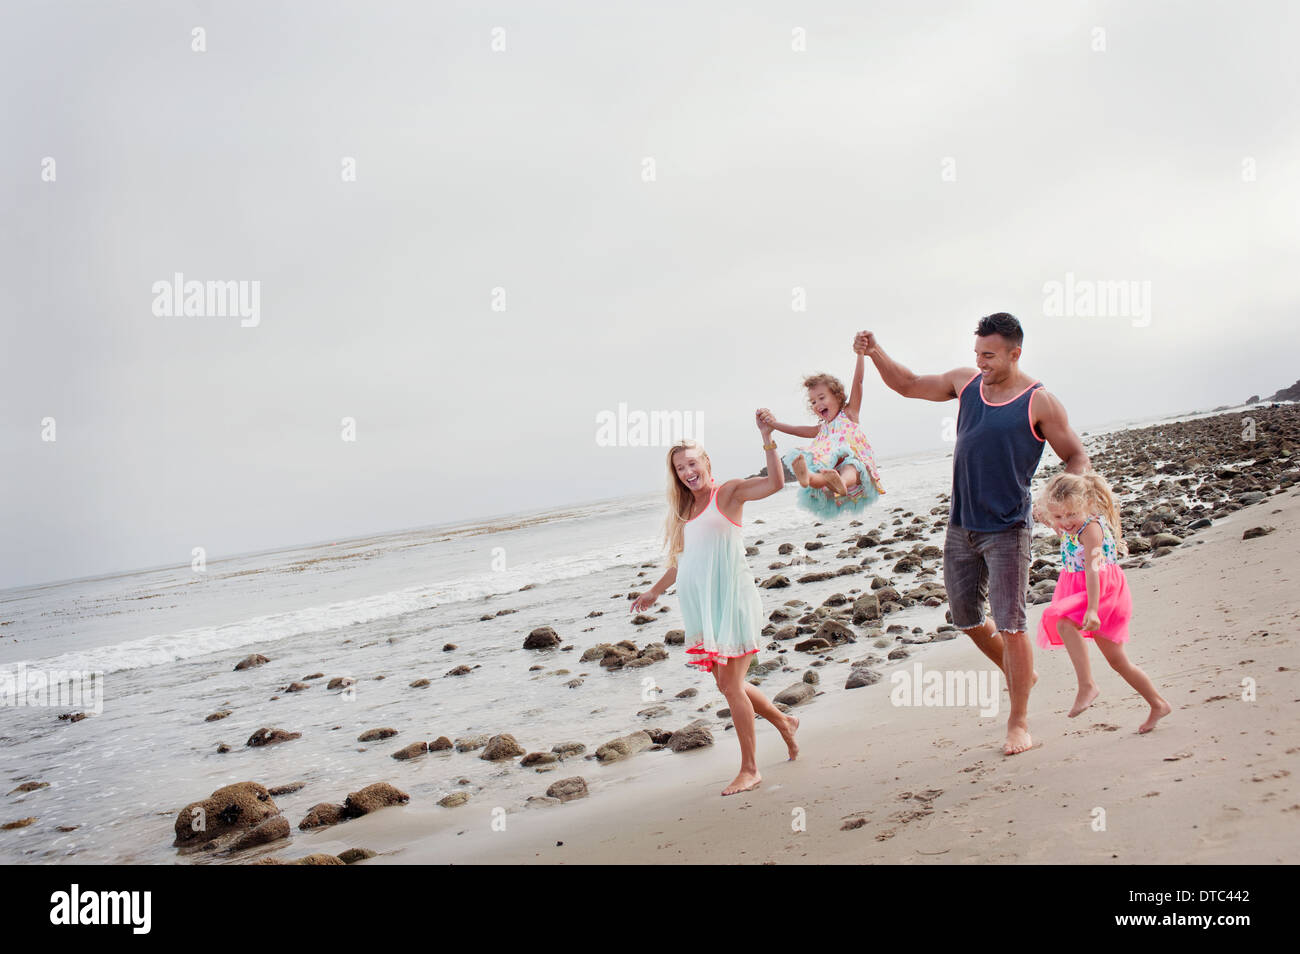 Parents and two young girls walking on beach Stock Photo